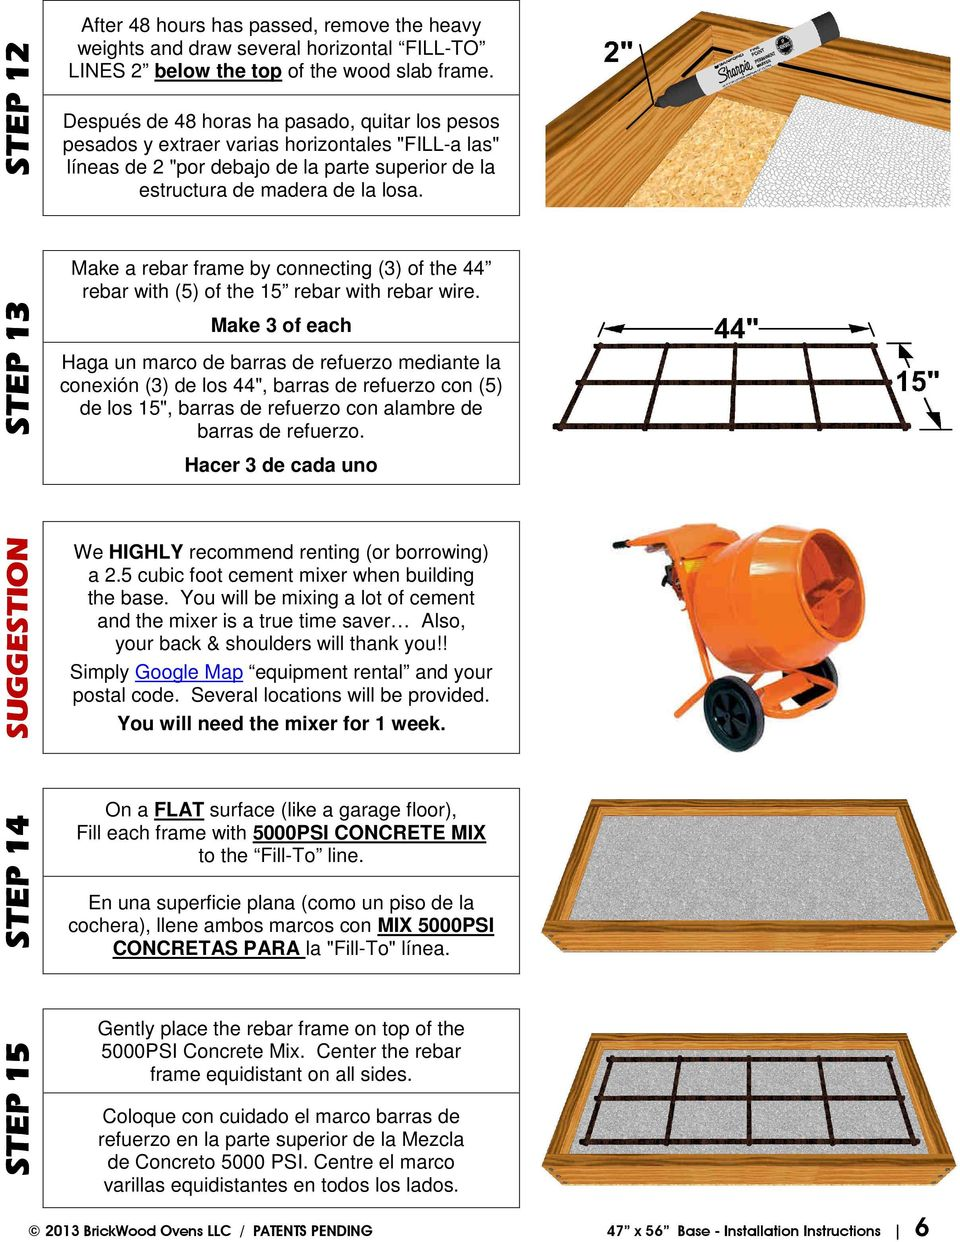 47 x 56 Insulated Base - PDF